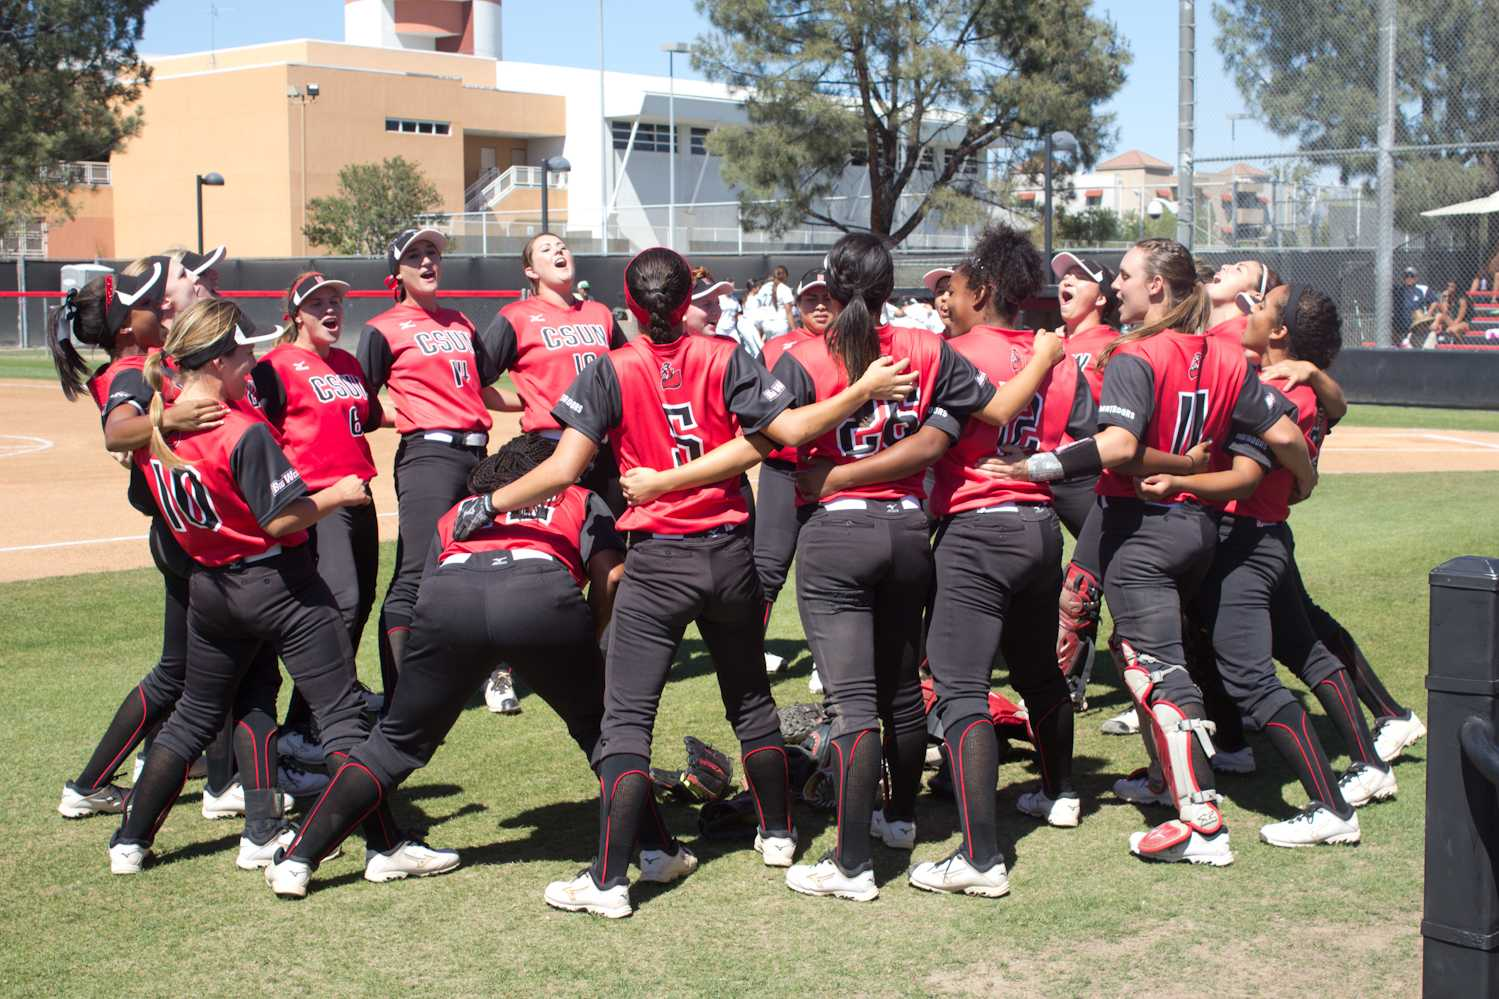 The CSUN Softball team celebrates after winning a share of the Big West Tournament after splitting the series against the University of Hawai'i. Allen Natian/Contributor